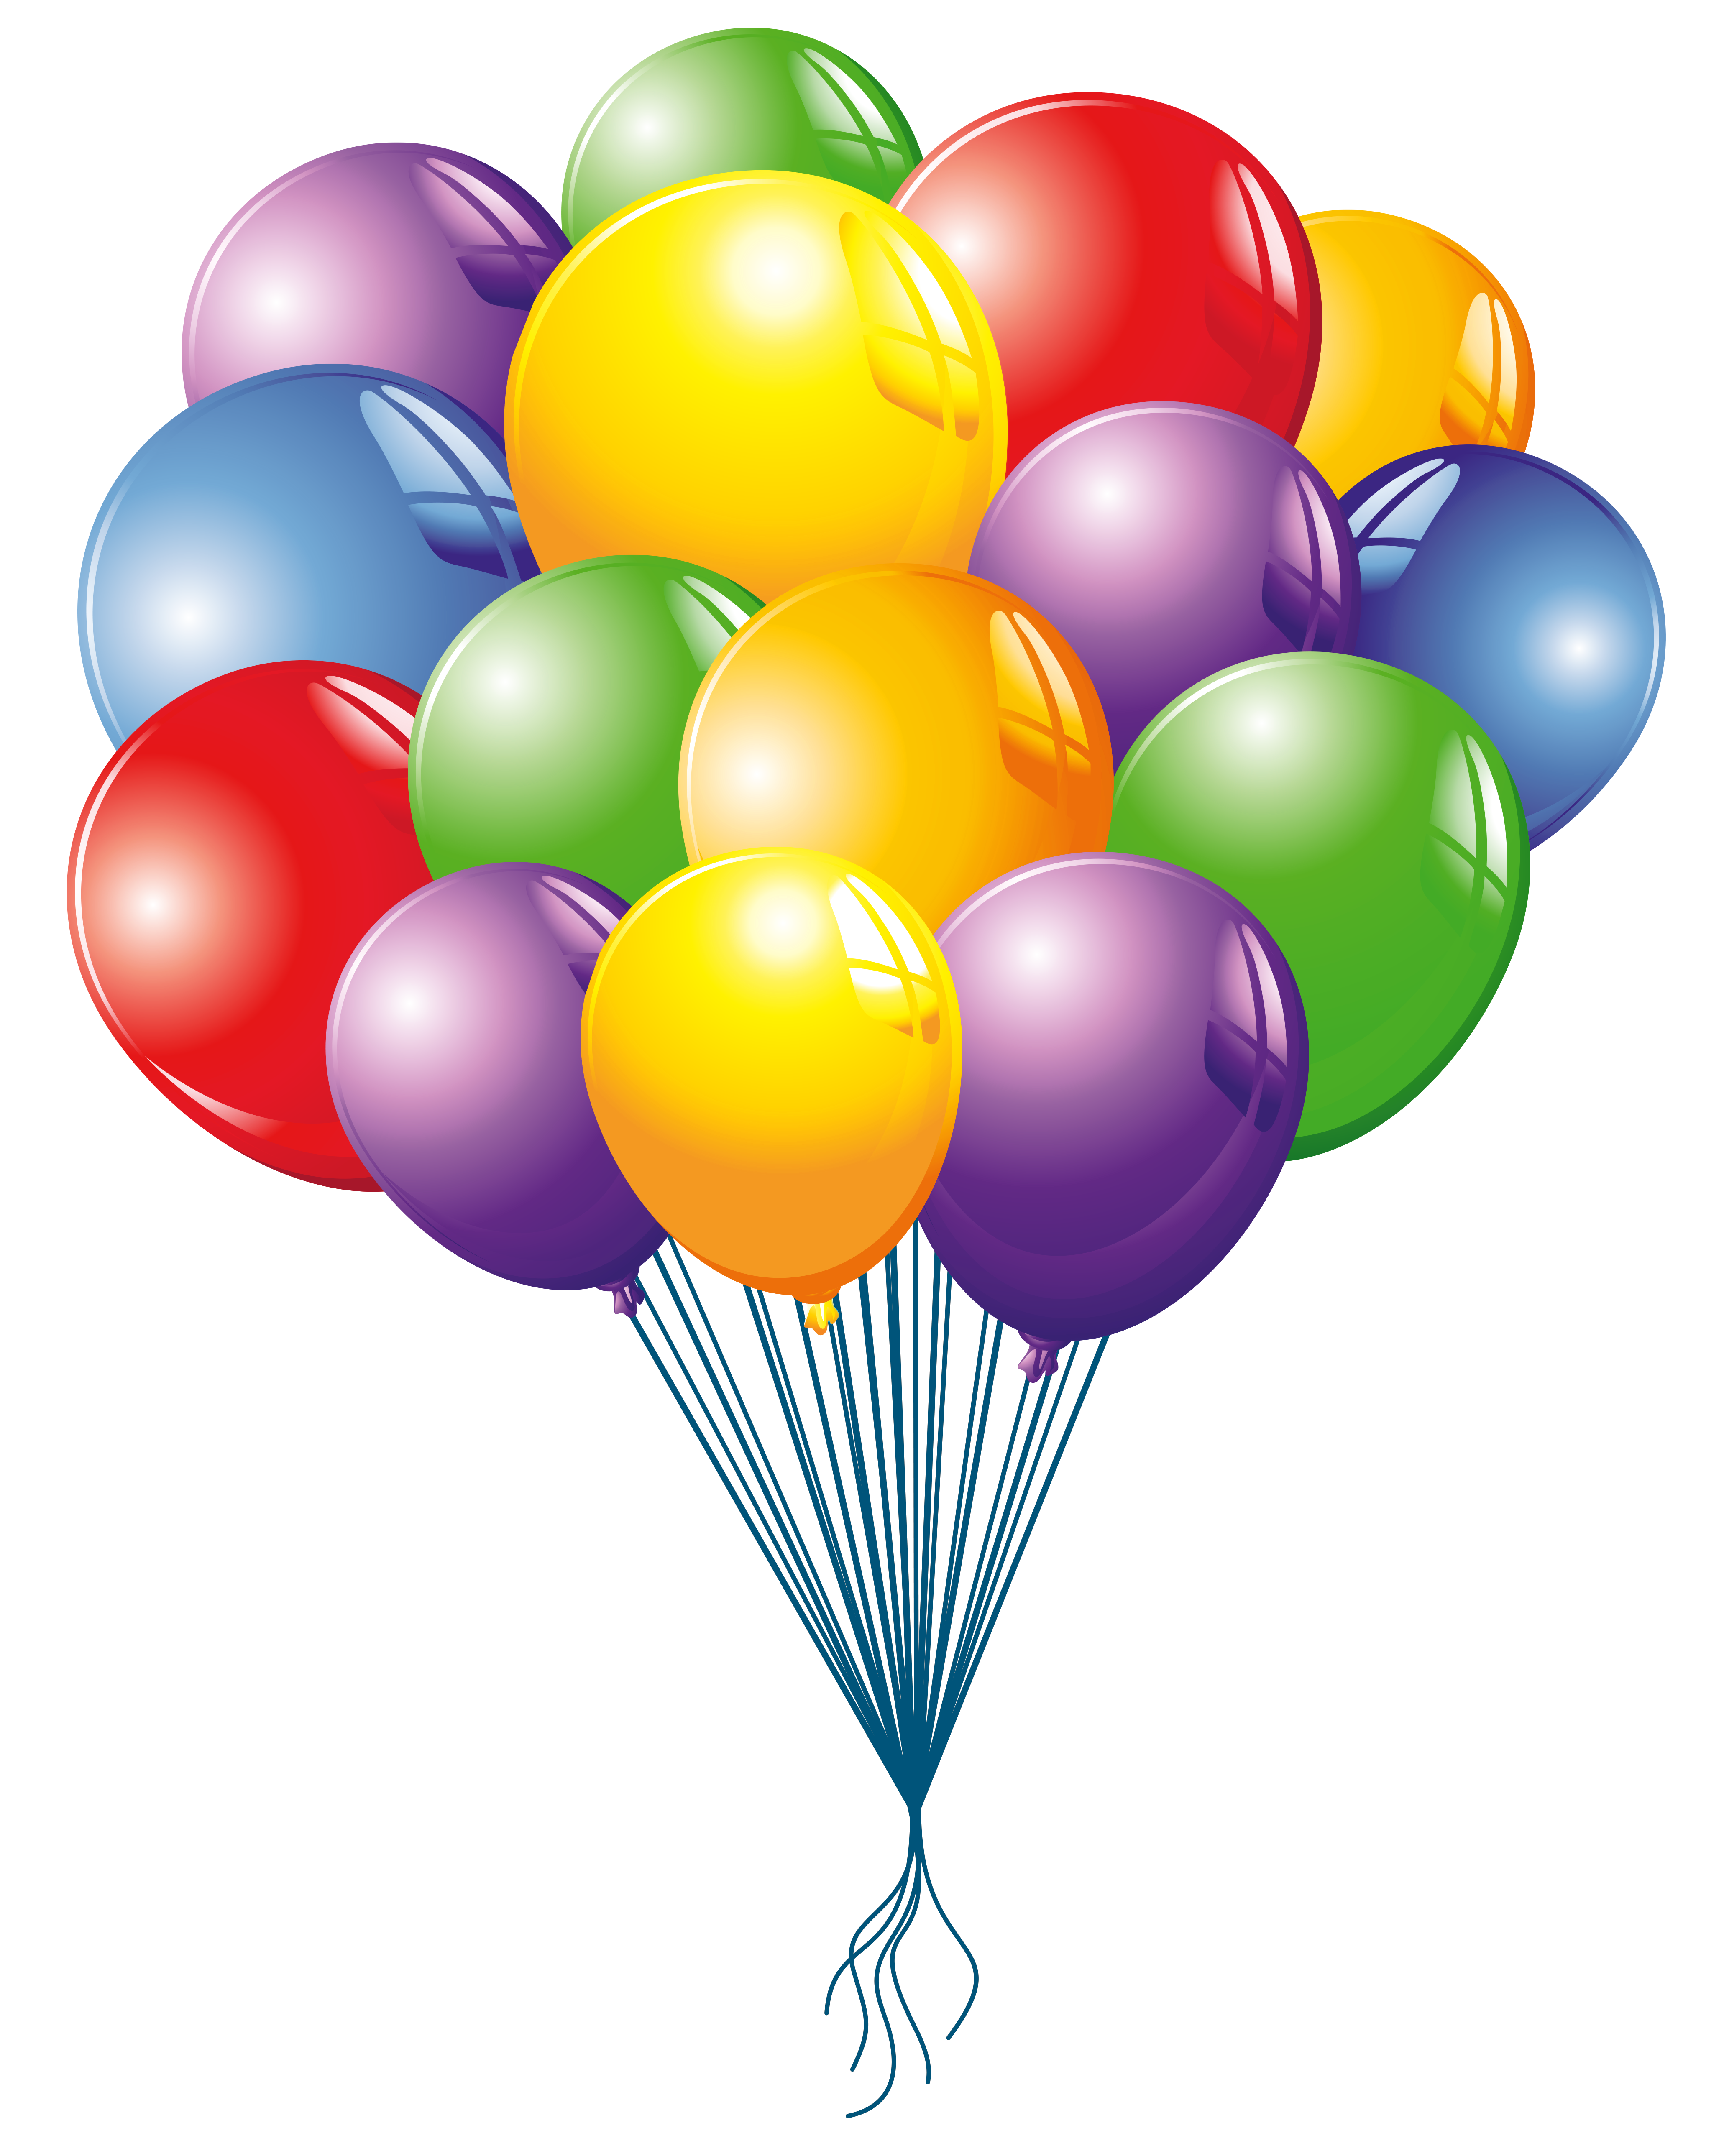 Image gallery yopriceville high. Balloons clipart